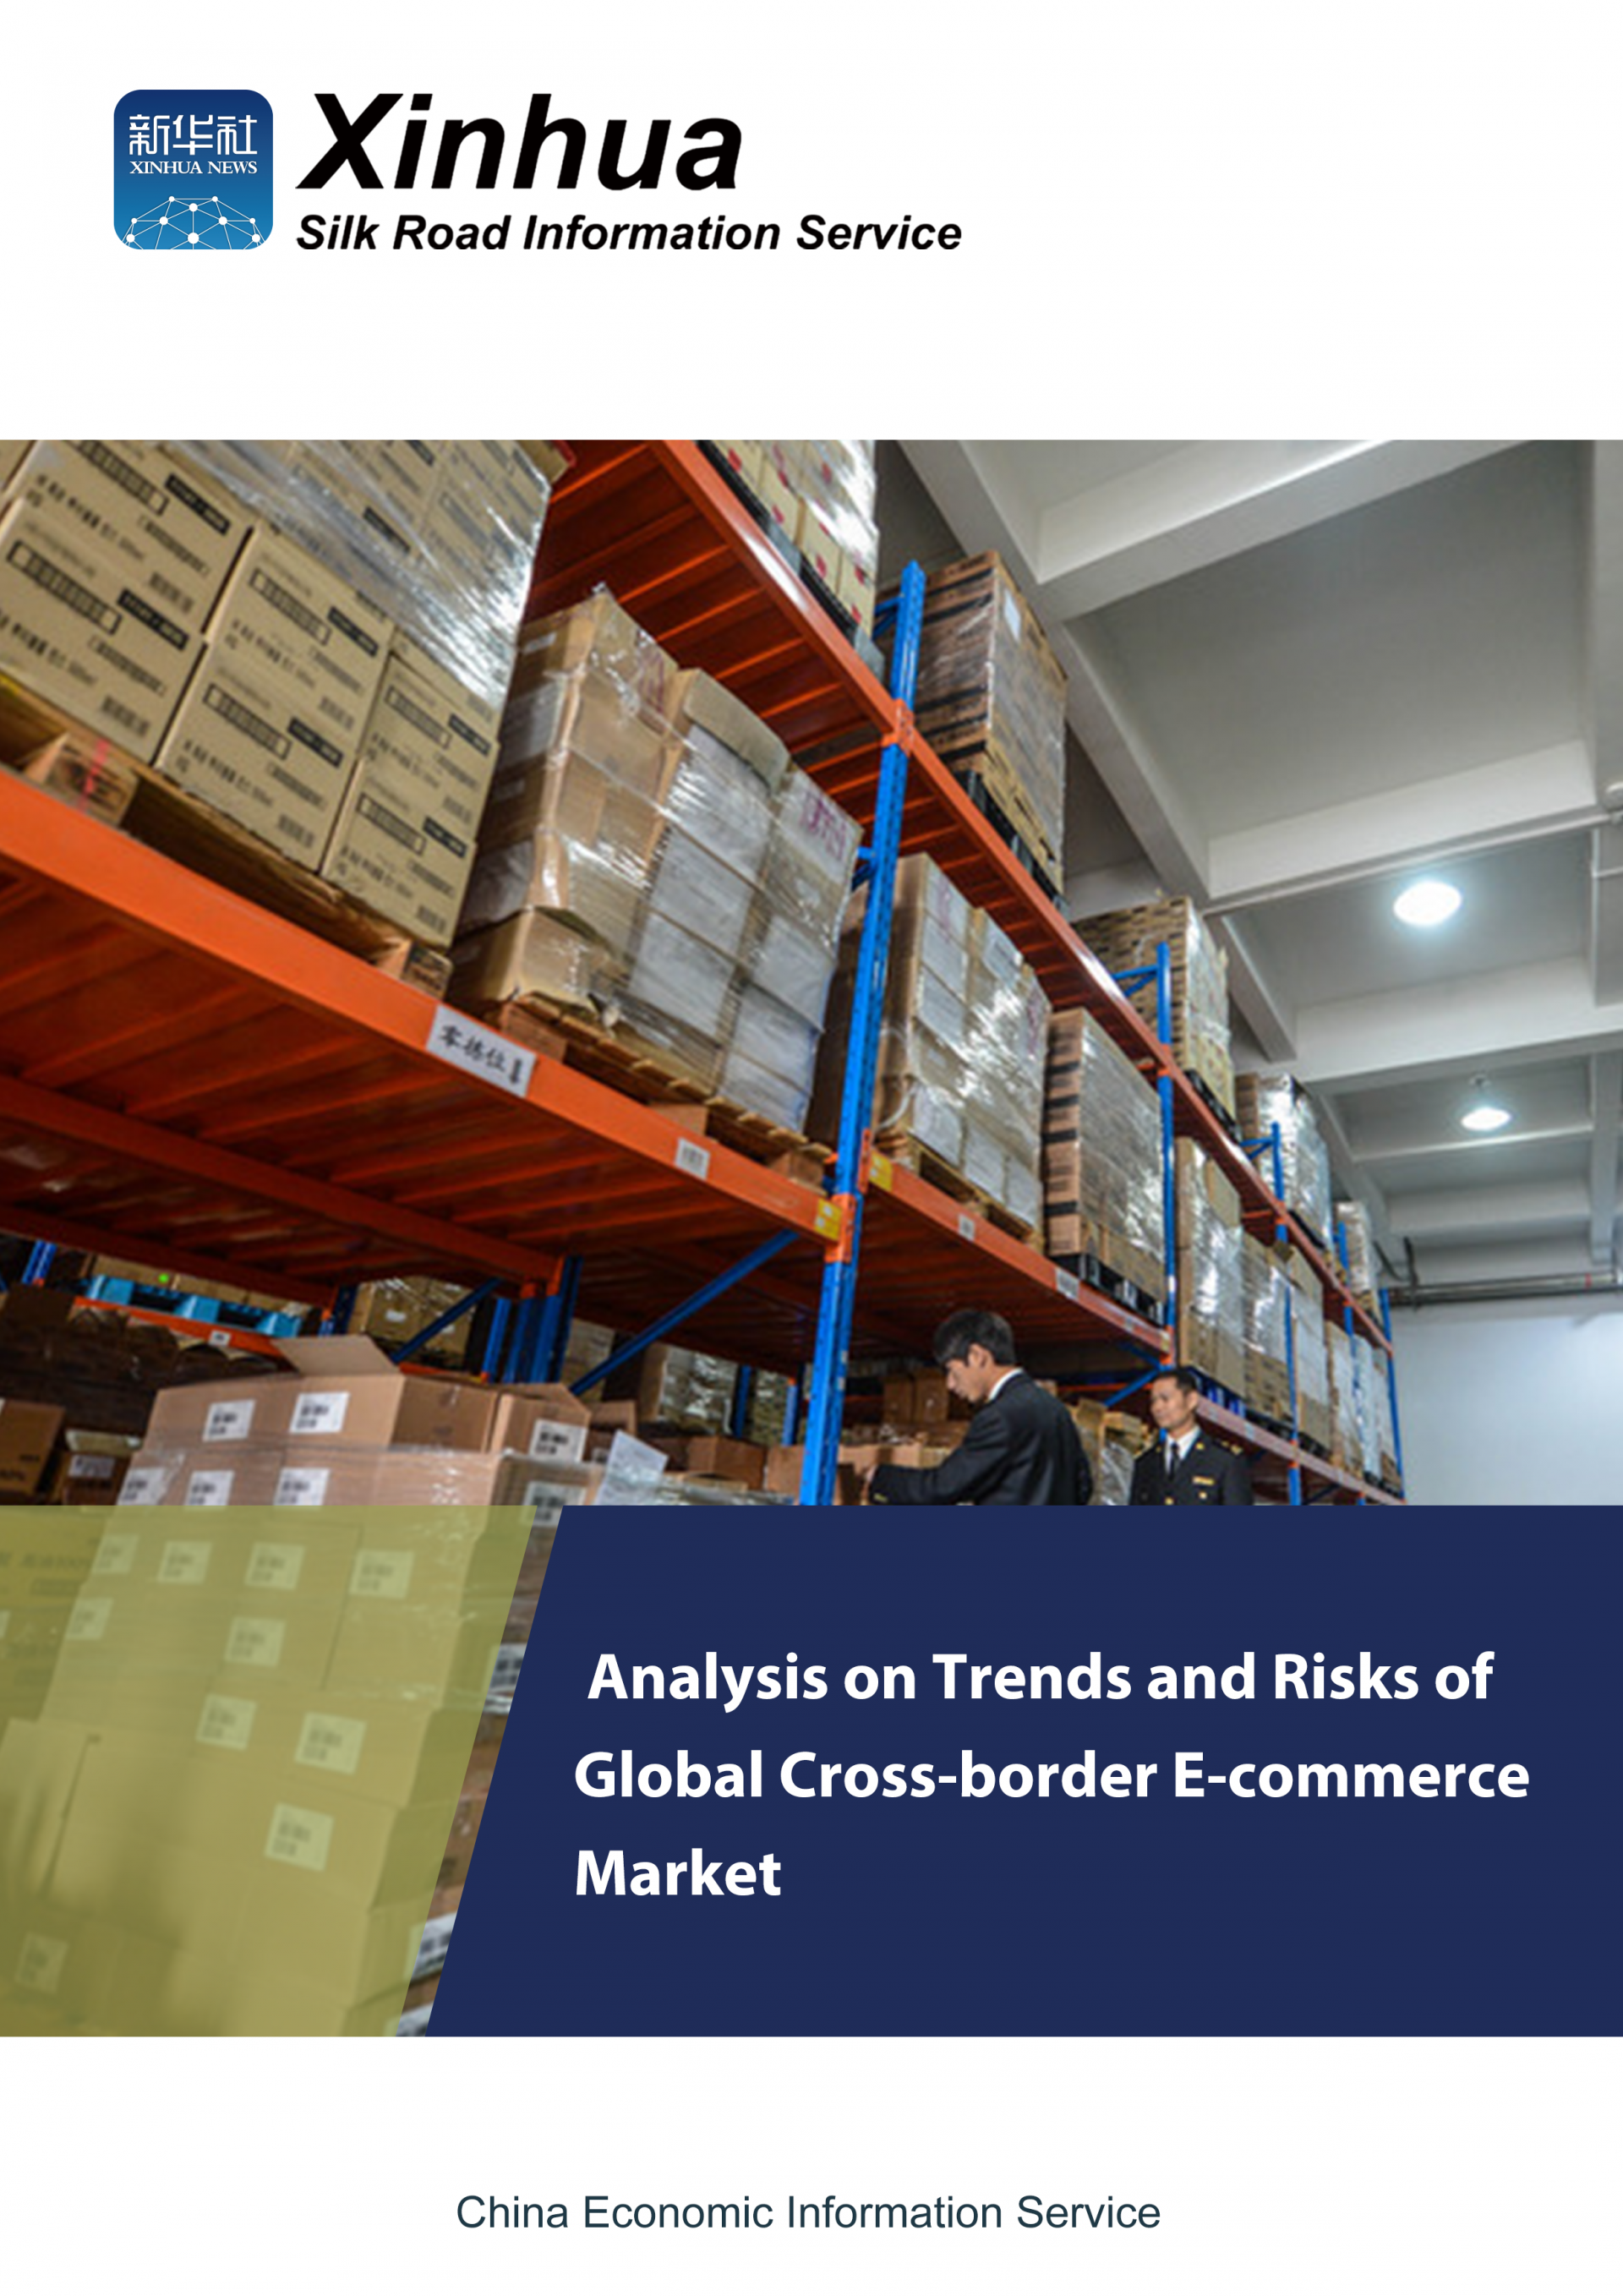 Analysis on Trends and Risks of Global Cross-border E-commerce Market